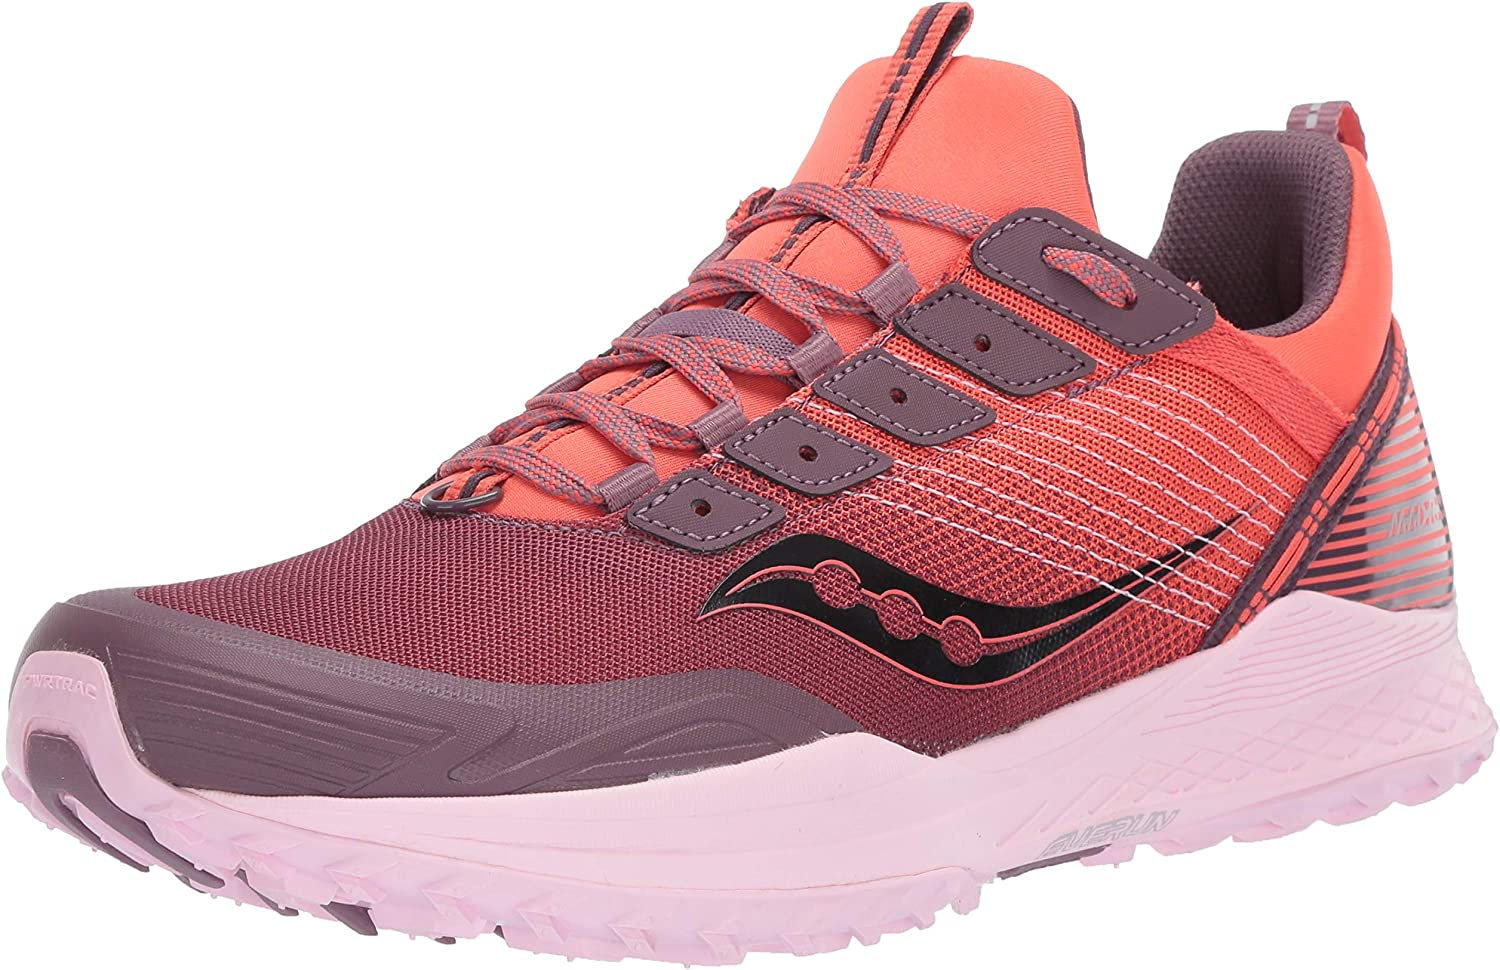   Saucony Women's Mad River TR Trail Running Shoe   Trail Running